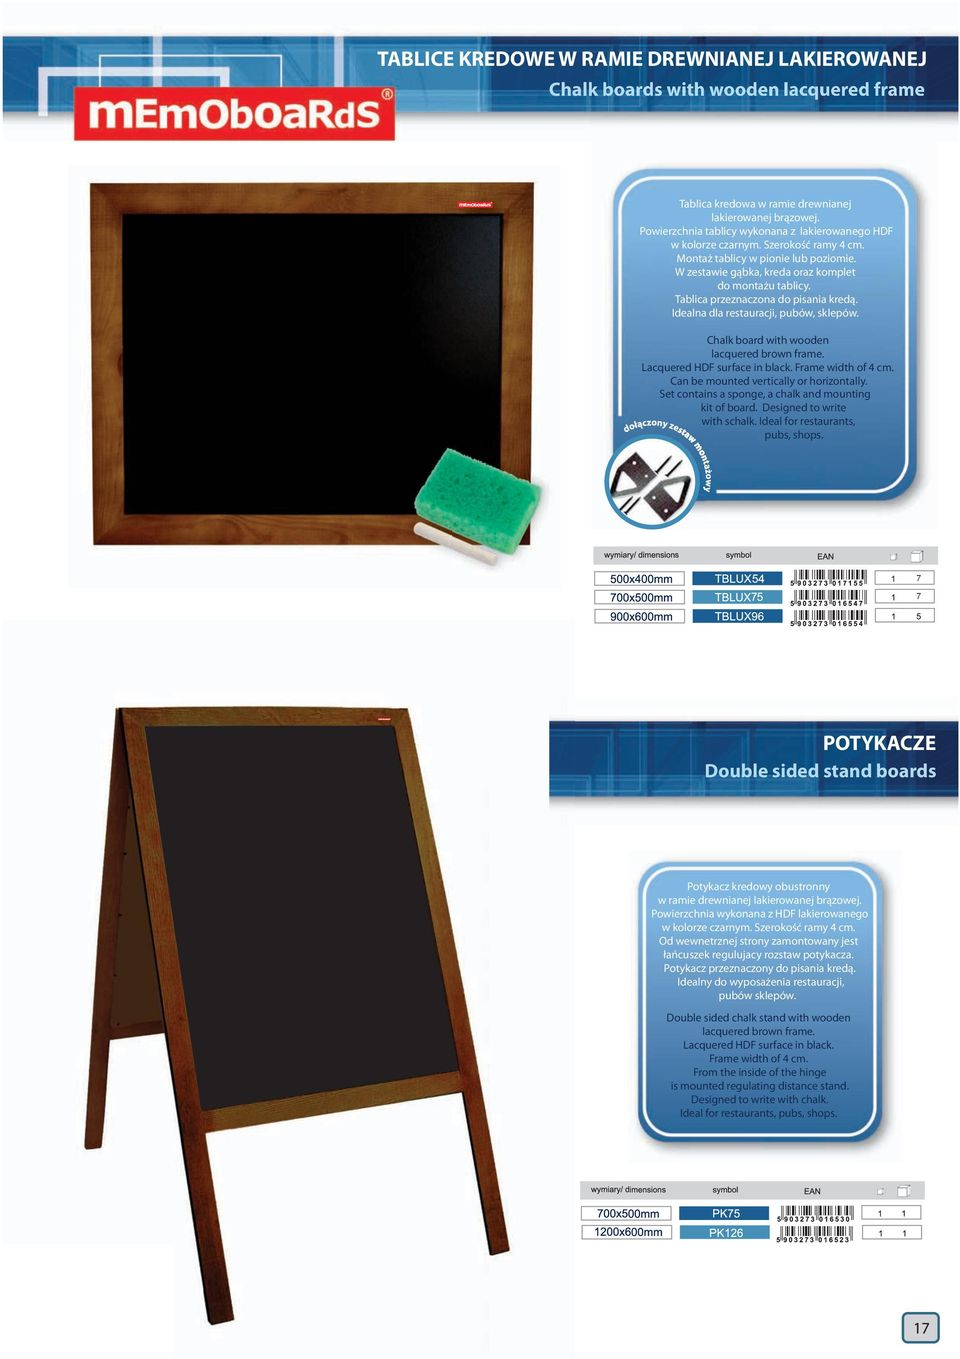 Tablica przeznaczona do pisania kredą. Idealna dla restauracji, pubów, sklepów. Chalk board with wooden lacquered brown frame. Lacquered HDF surface in black. Frame width of 4 cm.